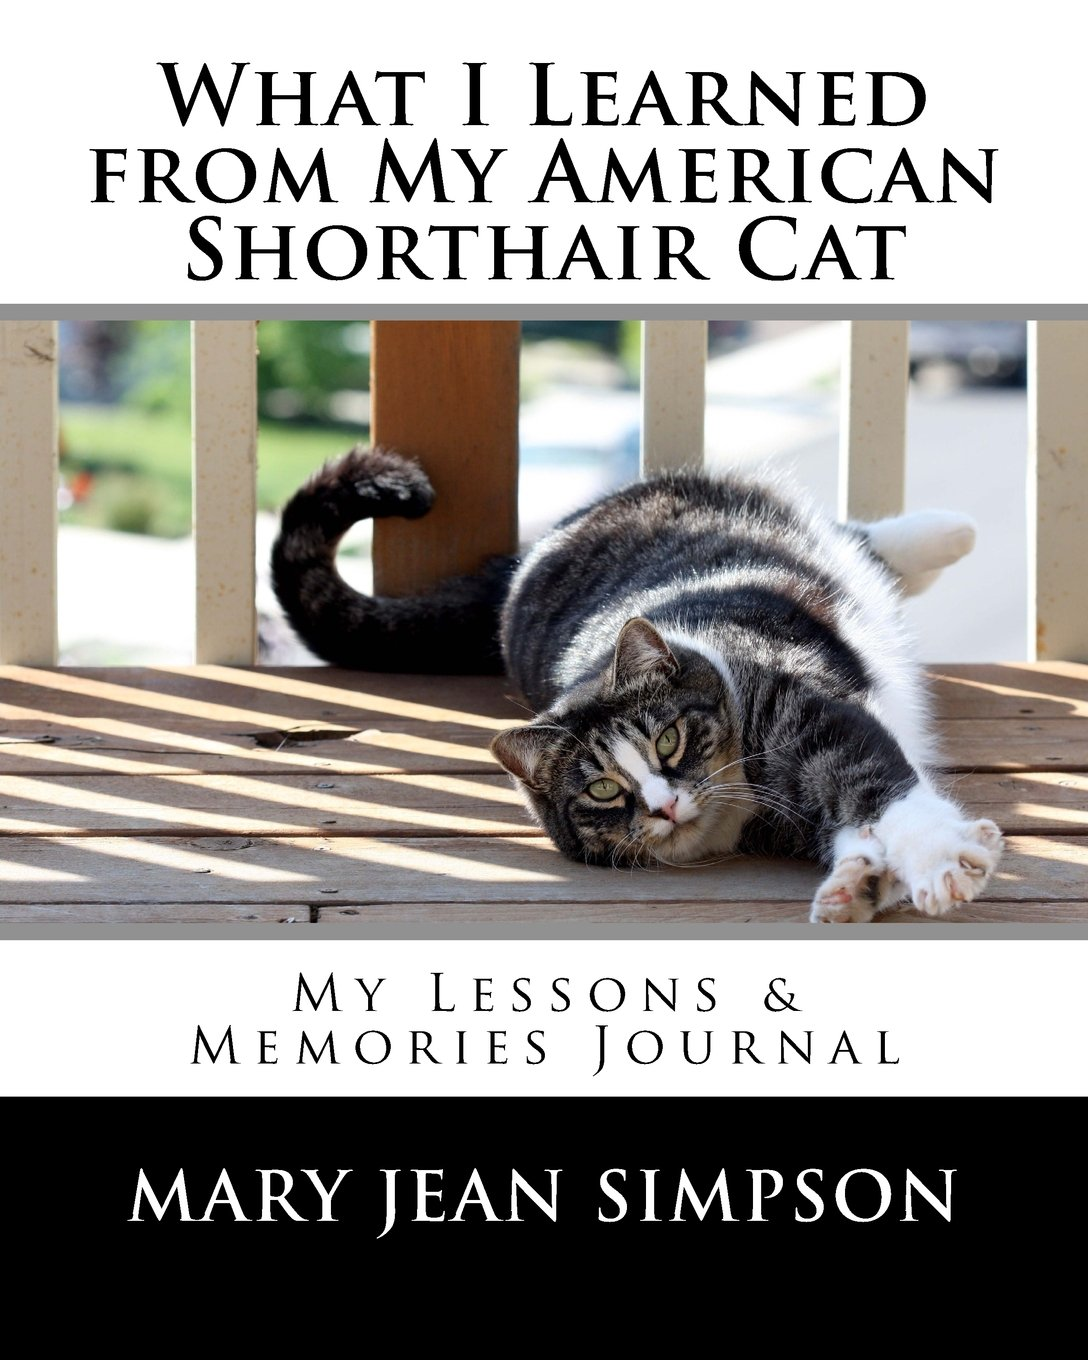 Download What I Learned from My American Shorthair Cat: My Lessons & Memories Journal PDF